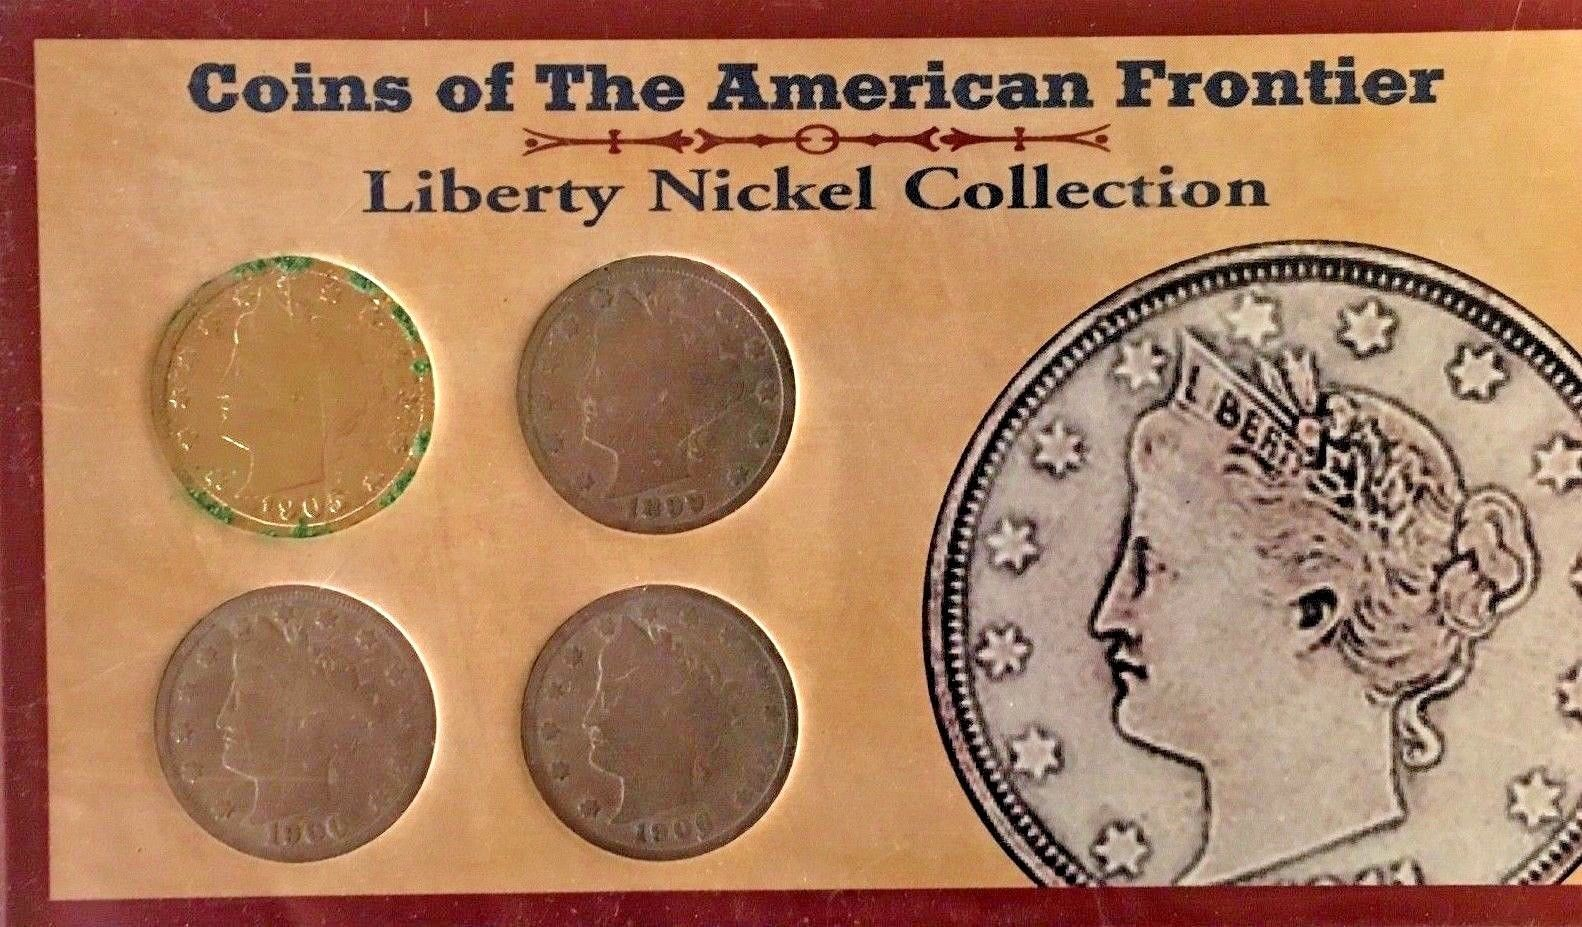 Primary image for  LIBERTY HEAD NICKEL Coins of the American Frontier 1883-1912